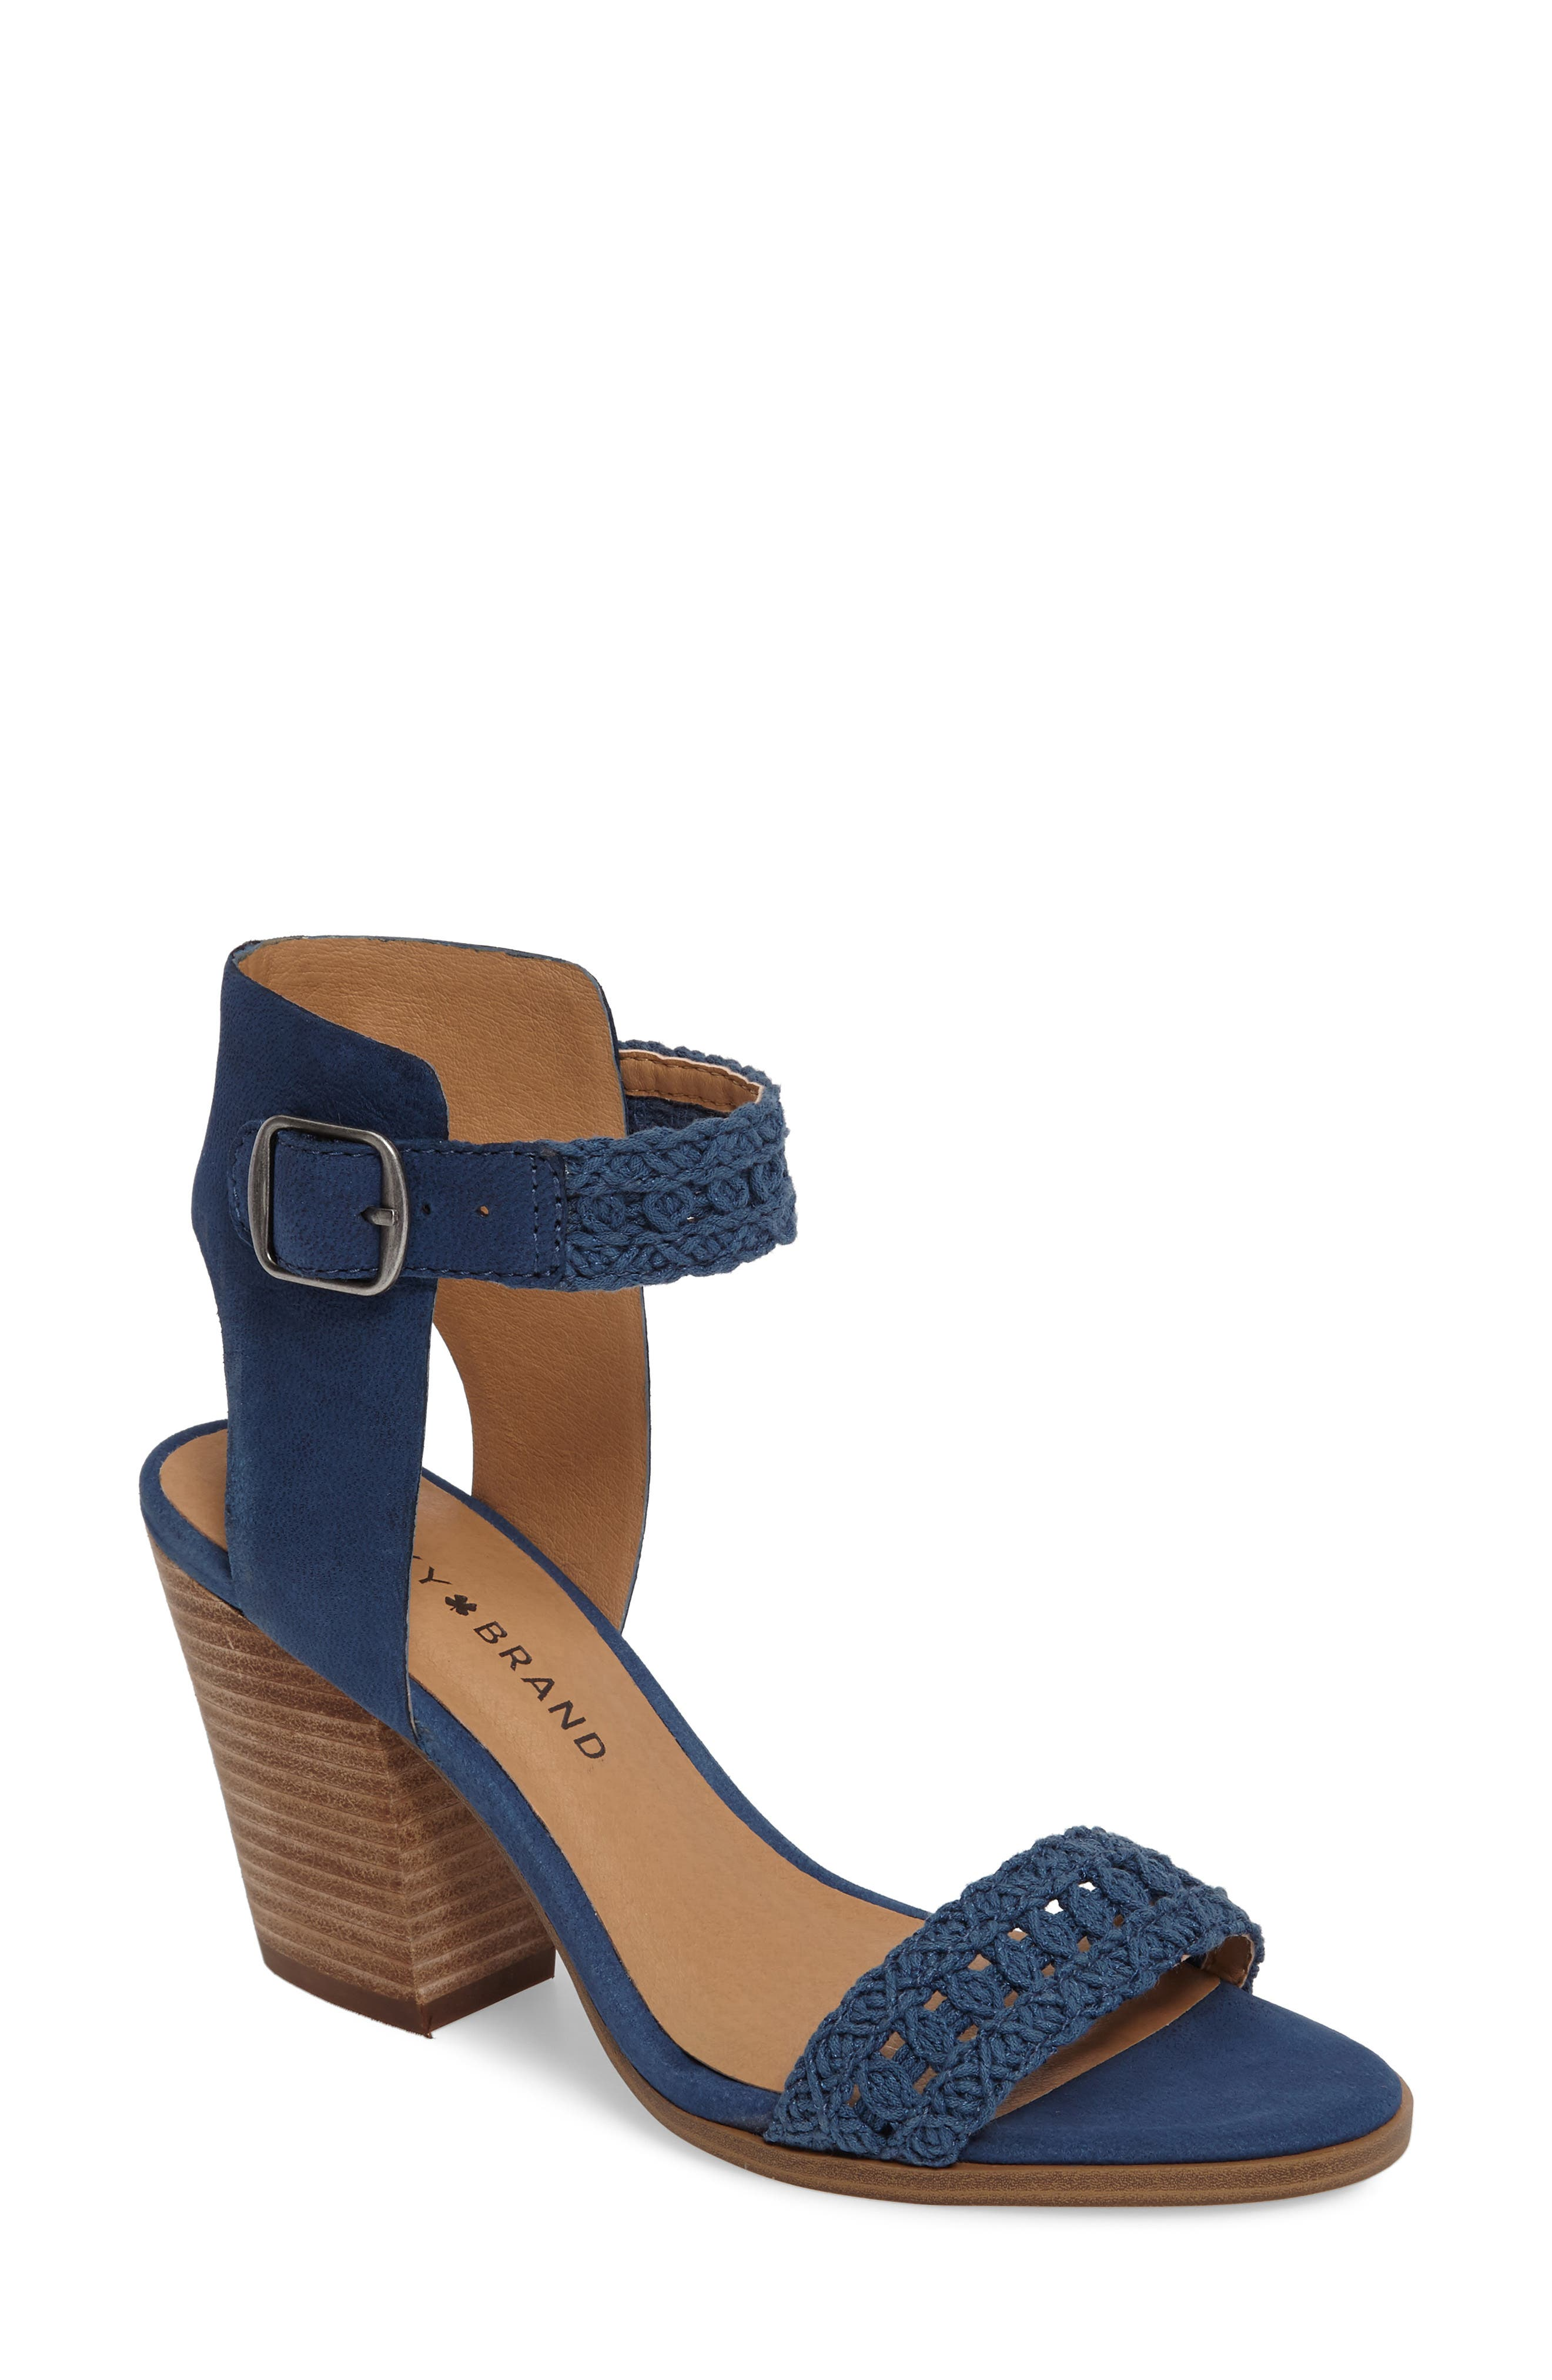 Main Image - Lucky Brand Oakes Ankle Strap Sandal (Women)